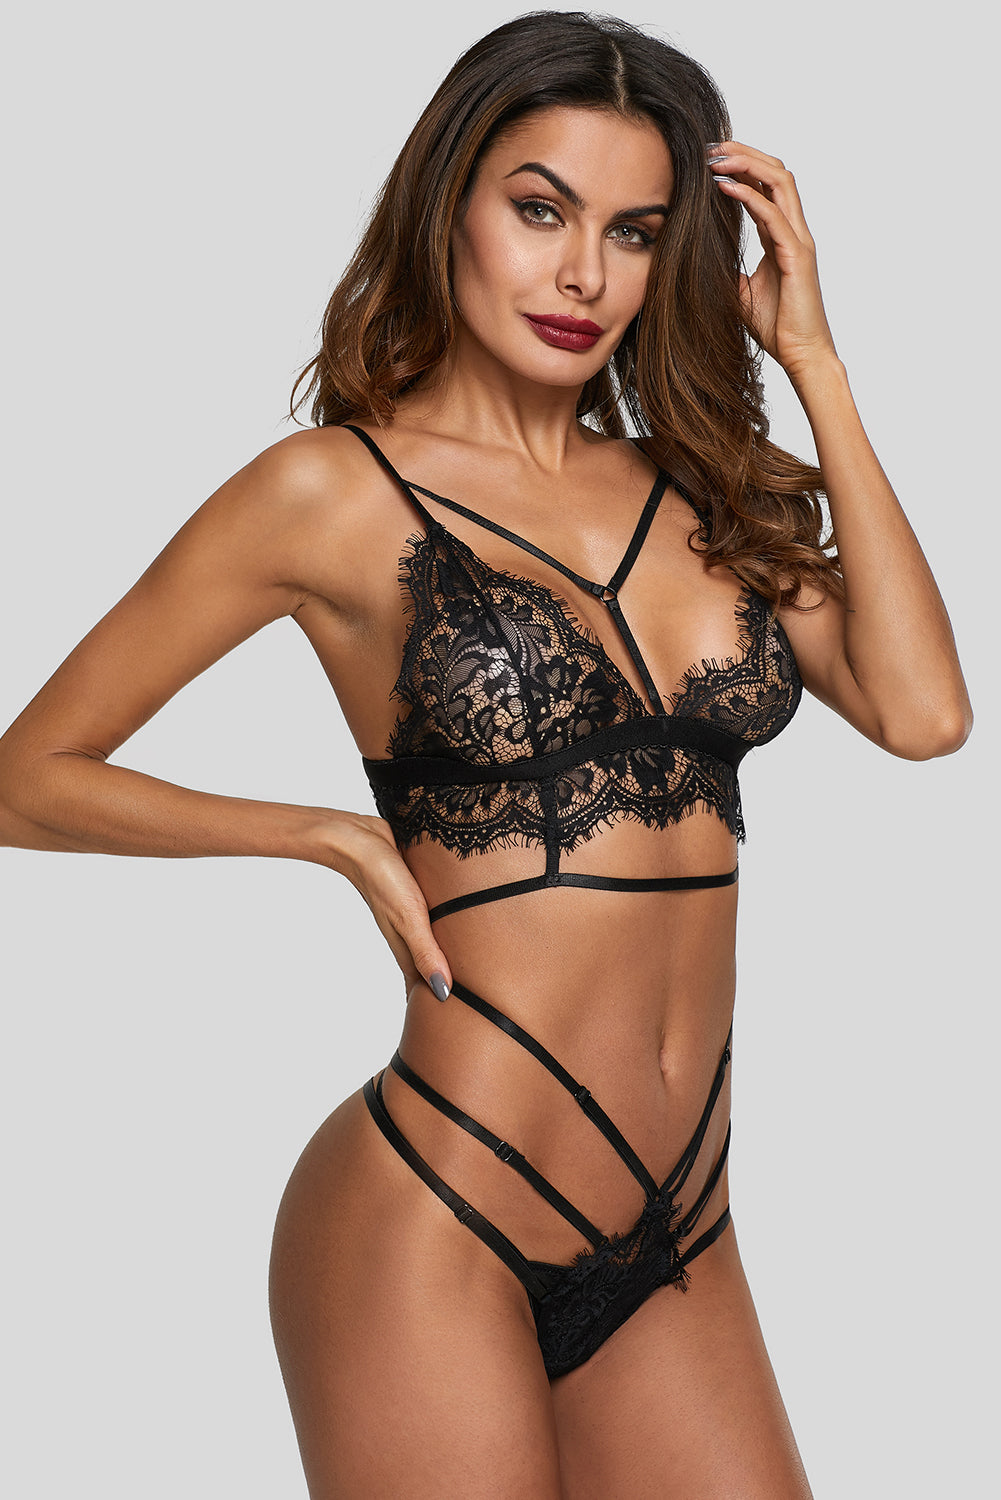 Black Lace Strappy See Through Lingerie Set